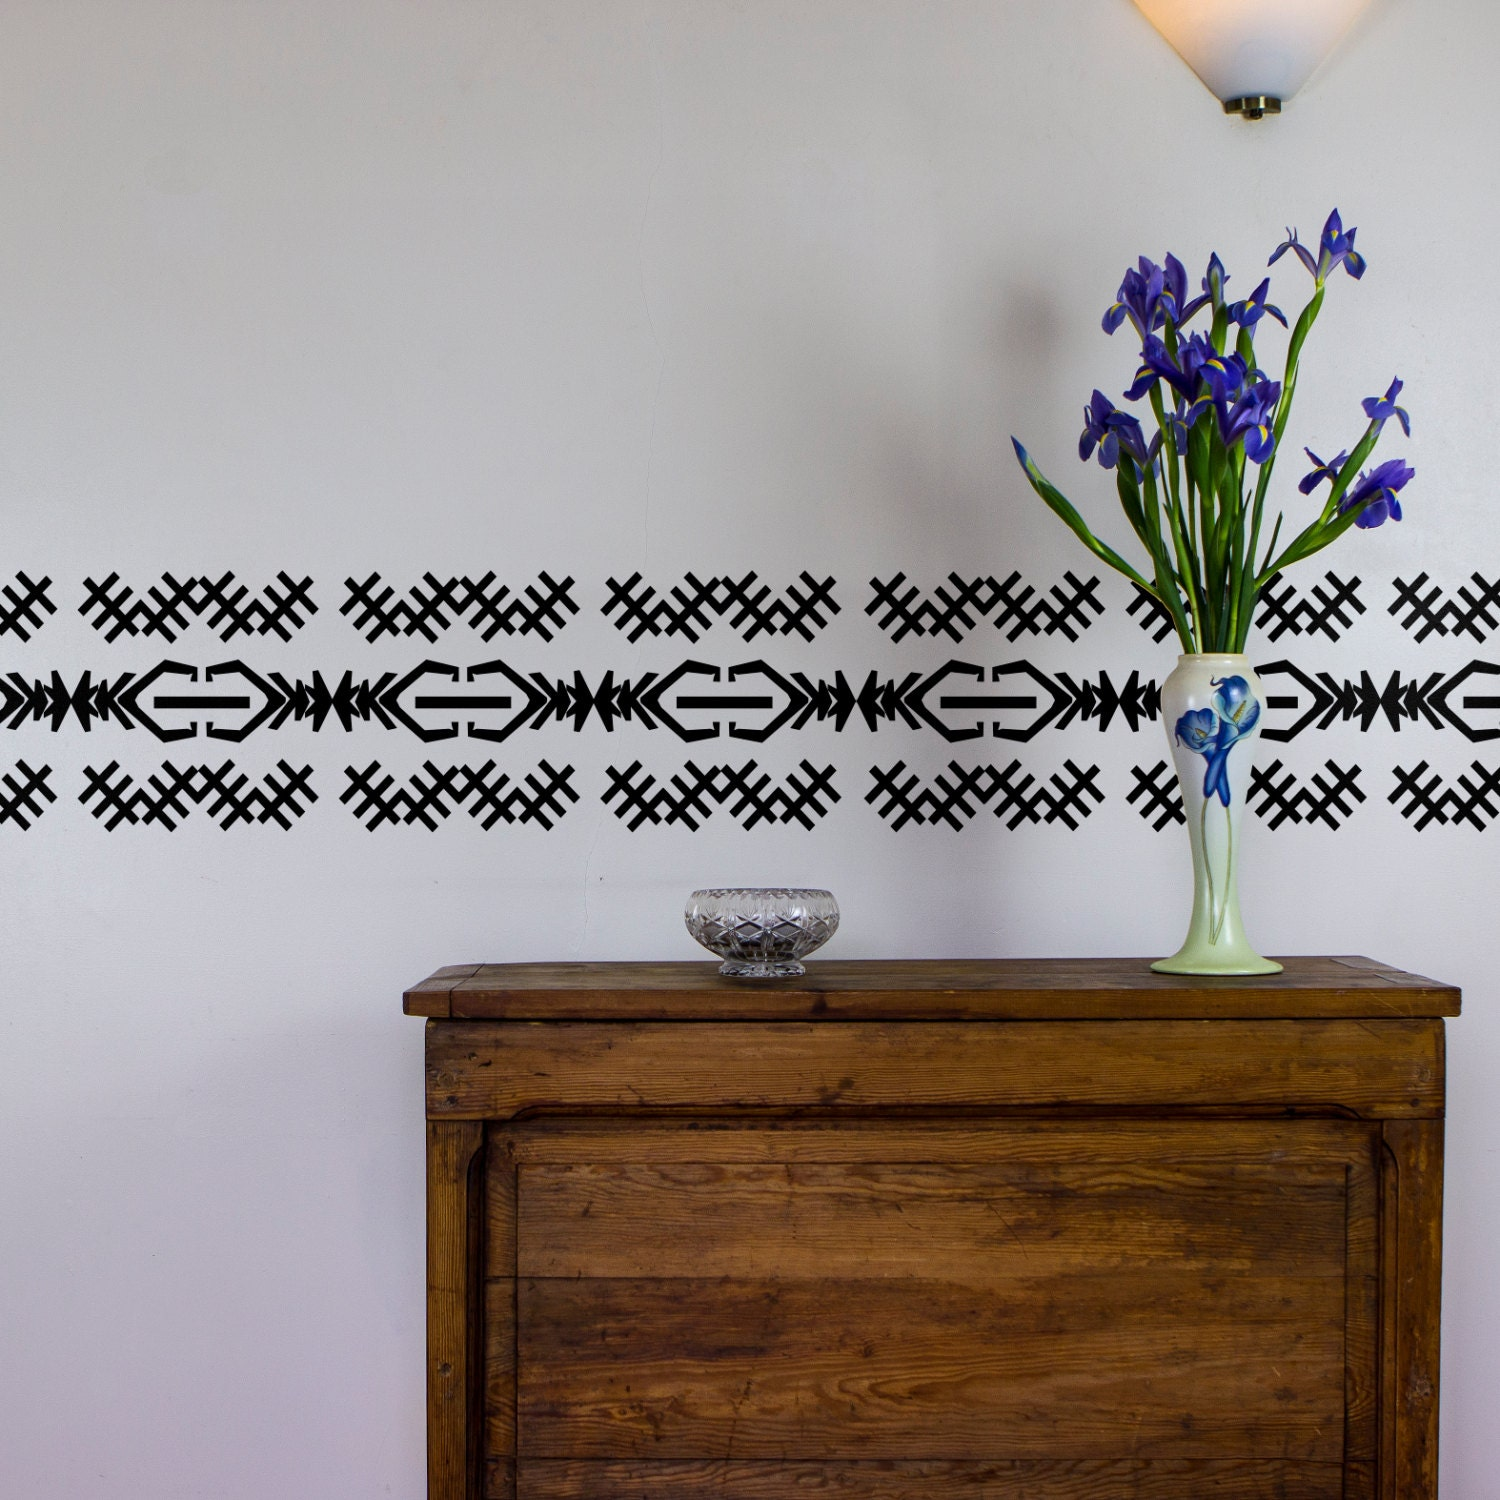 Traditional African Hatched Vinyl Wall Art Decal Border for Interior Design